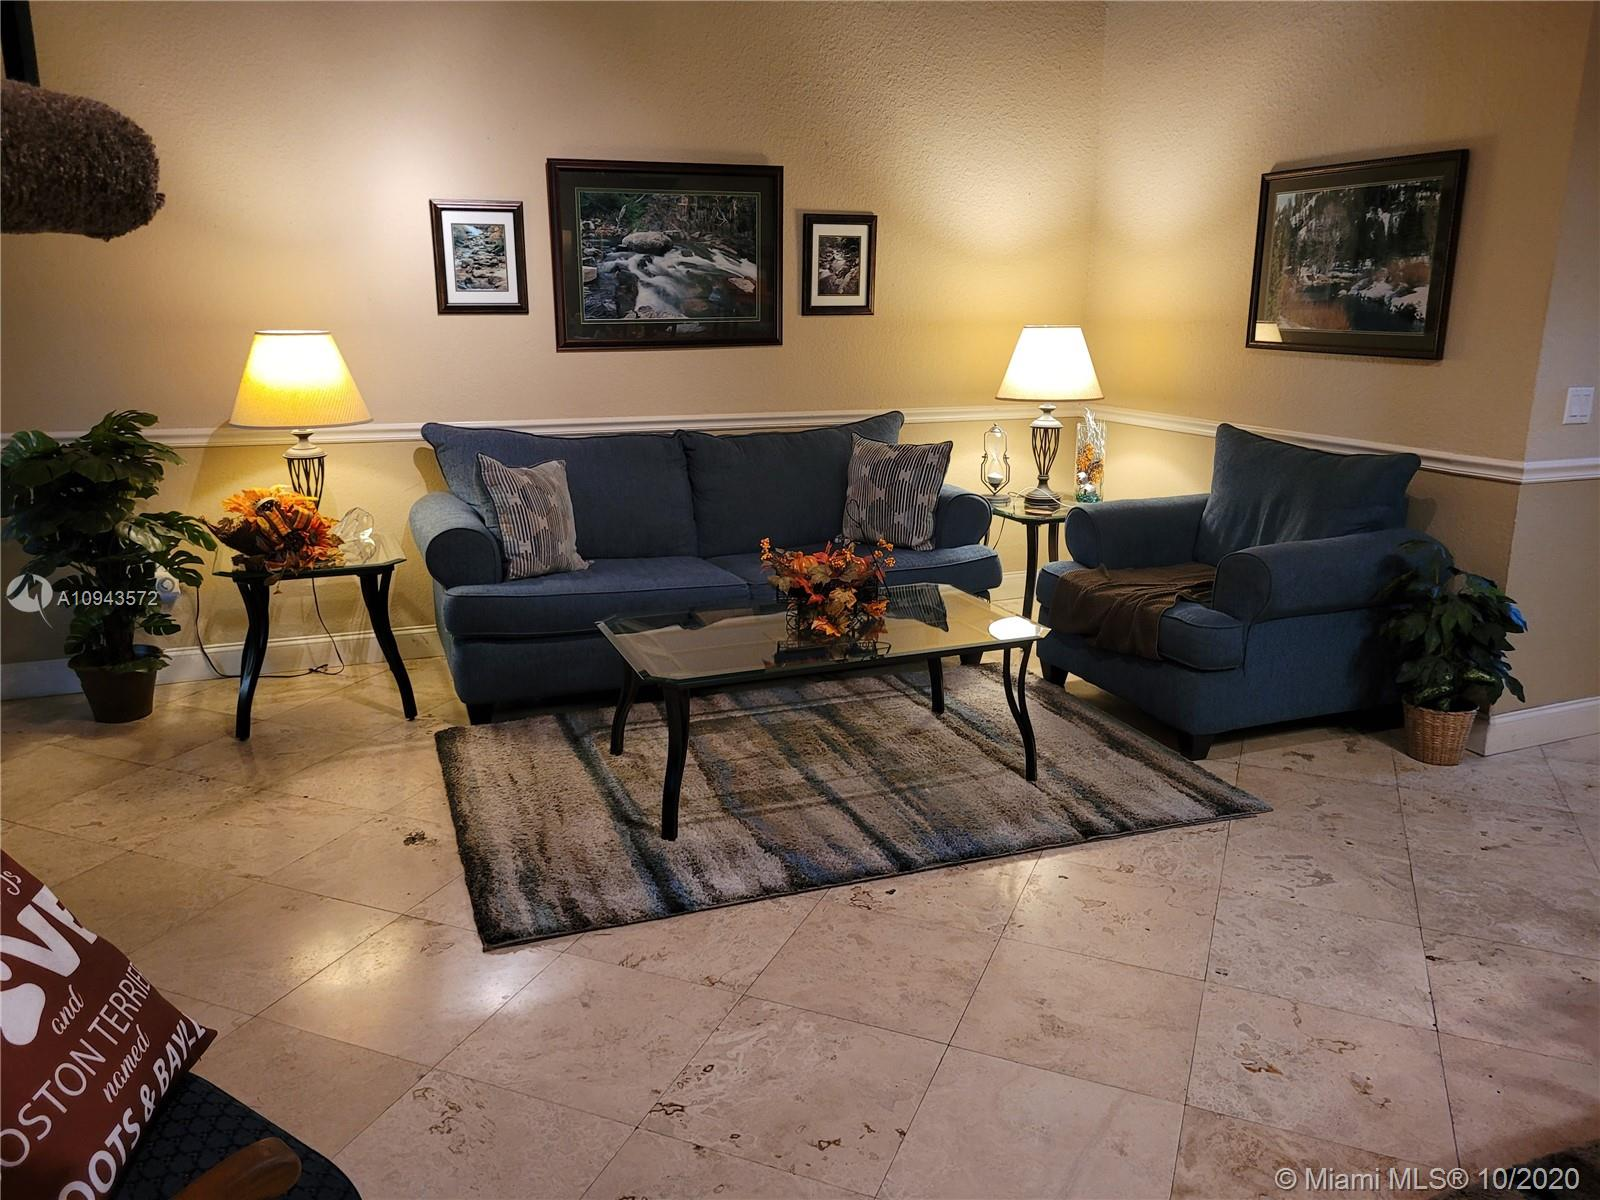 Large and beautiful 2 bedroom 2.5 bathroom townhouse. You will be glad you walked into this warm and stunning home with high ceilings and a privately fenced backyard oasis. Kitchen with Stainless Steel Appliances and granite countertop. One large bedroom downstairs along with 1.5 bathrooms and the master suite with the master bathroom upstairs. Washer and Dryer in unit. Enjoy the relaxing backyard with palm trees and Hot tub...Great place to have your coffee in the morning or a nice glass of wine in the evening. No HOA fee. Great for your primary home or an investment property. Pet Friendly. Just minutes to the beach, major highways, and great shopping... you are central to absolutely EVERYTHING. Schedule a shows.